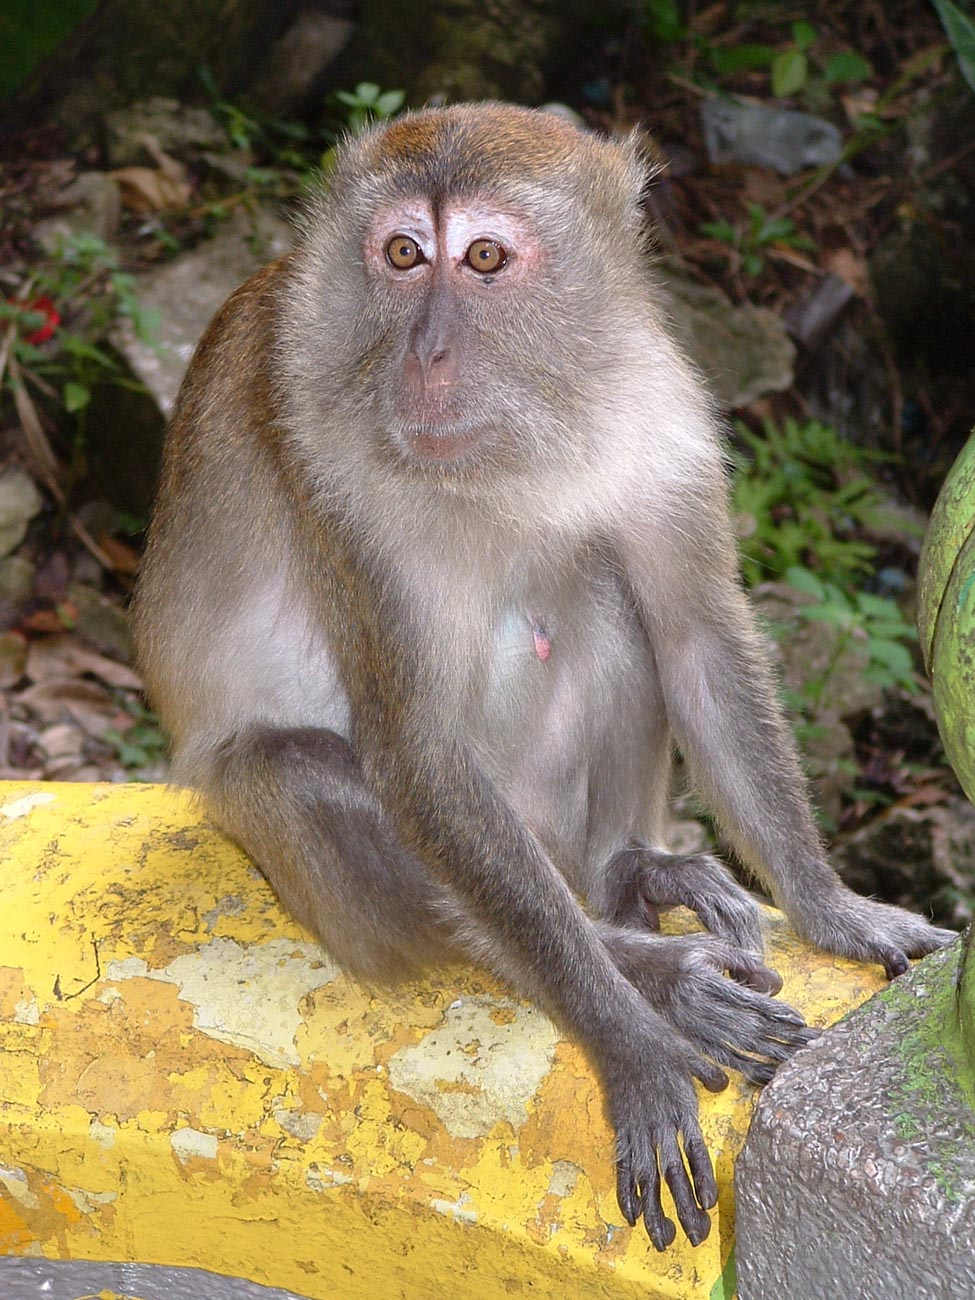 Macaque at Batu Caves